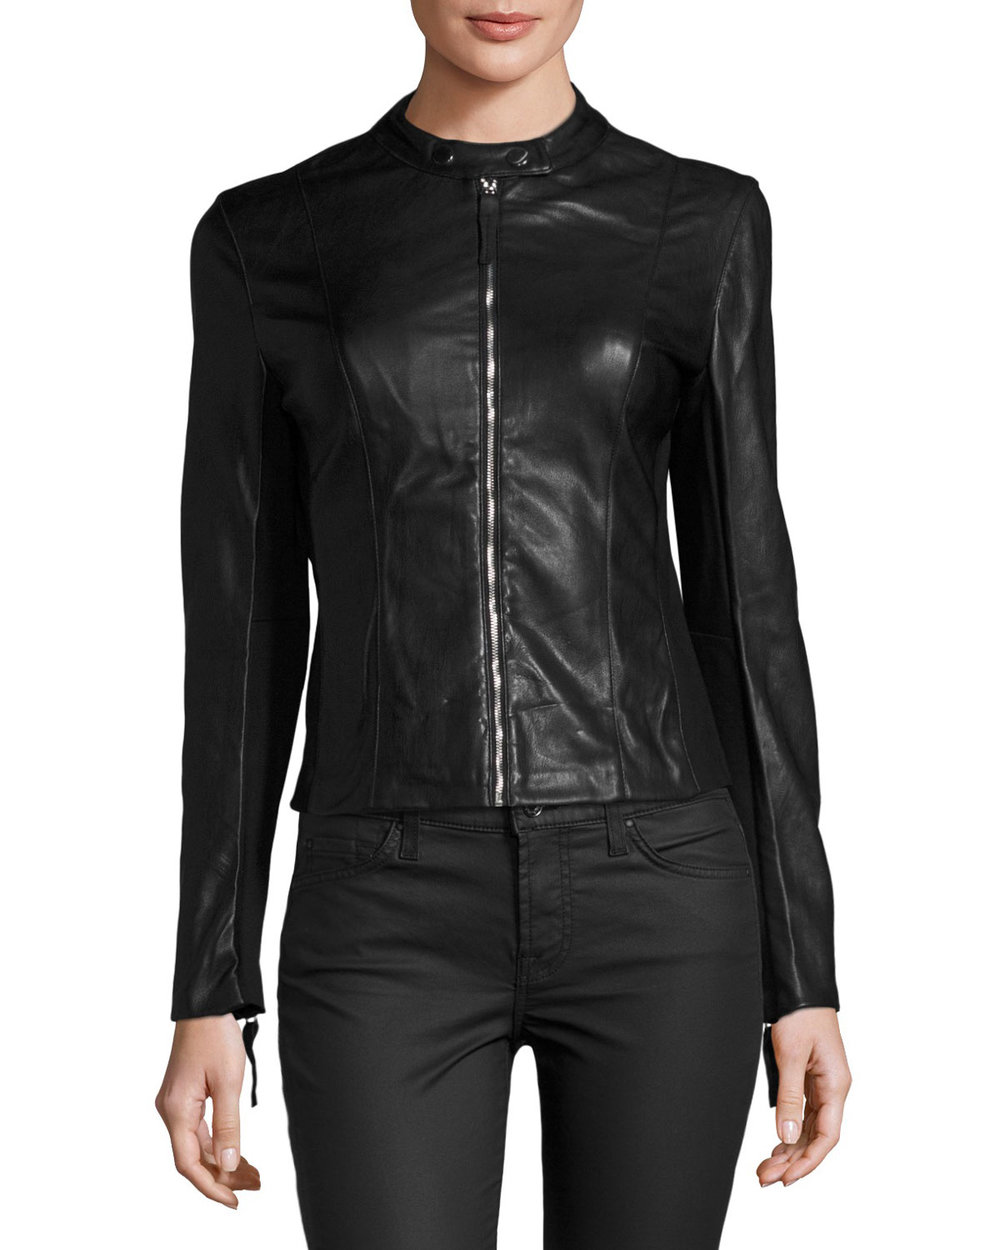 Faux-Leather Moto Jacket. Neiman Marcus Last Call. Was: $98. Now: $69. Spend $100 to get $50 off.